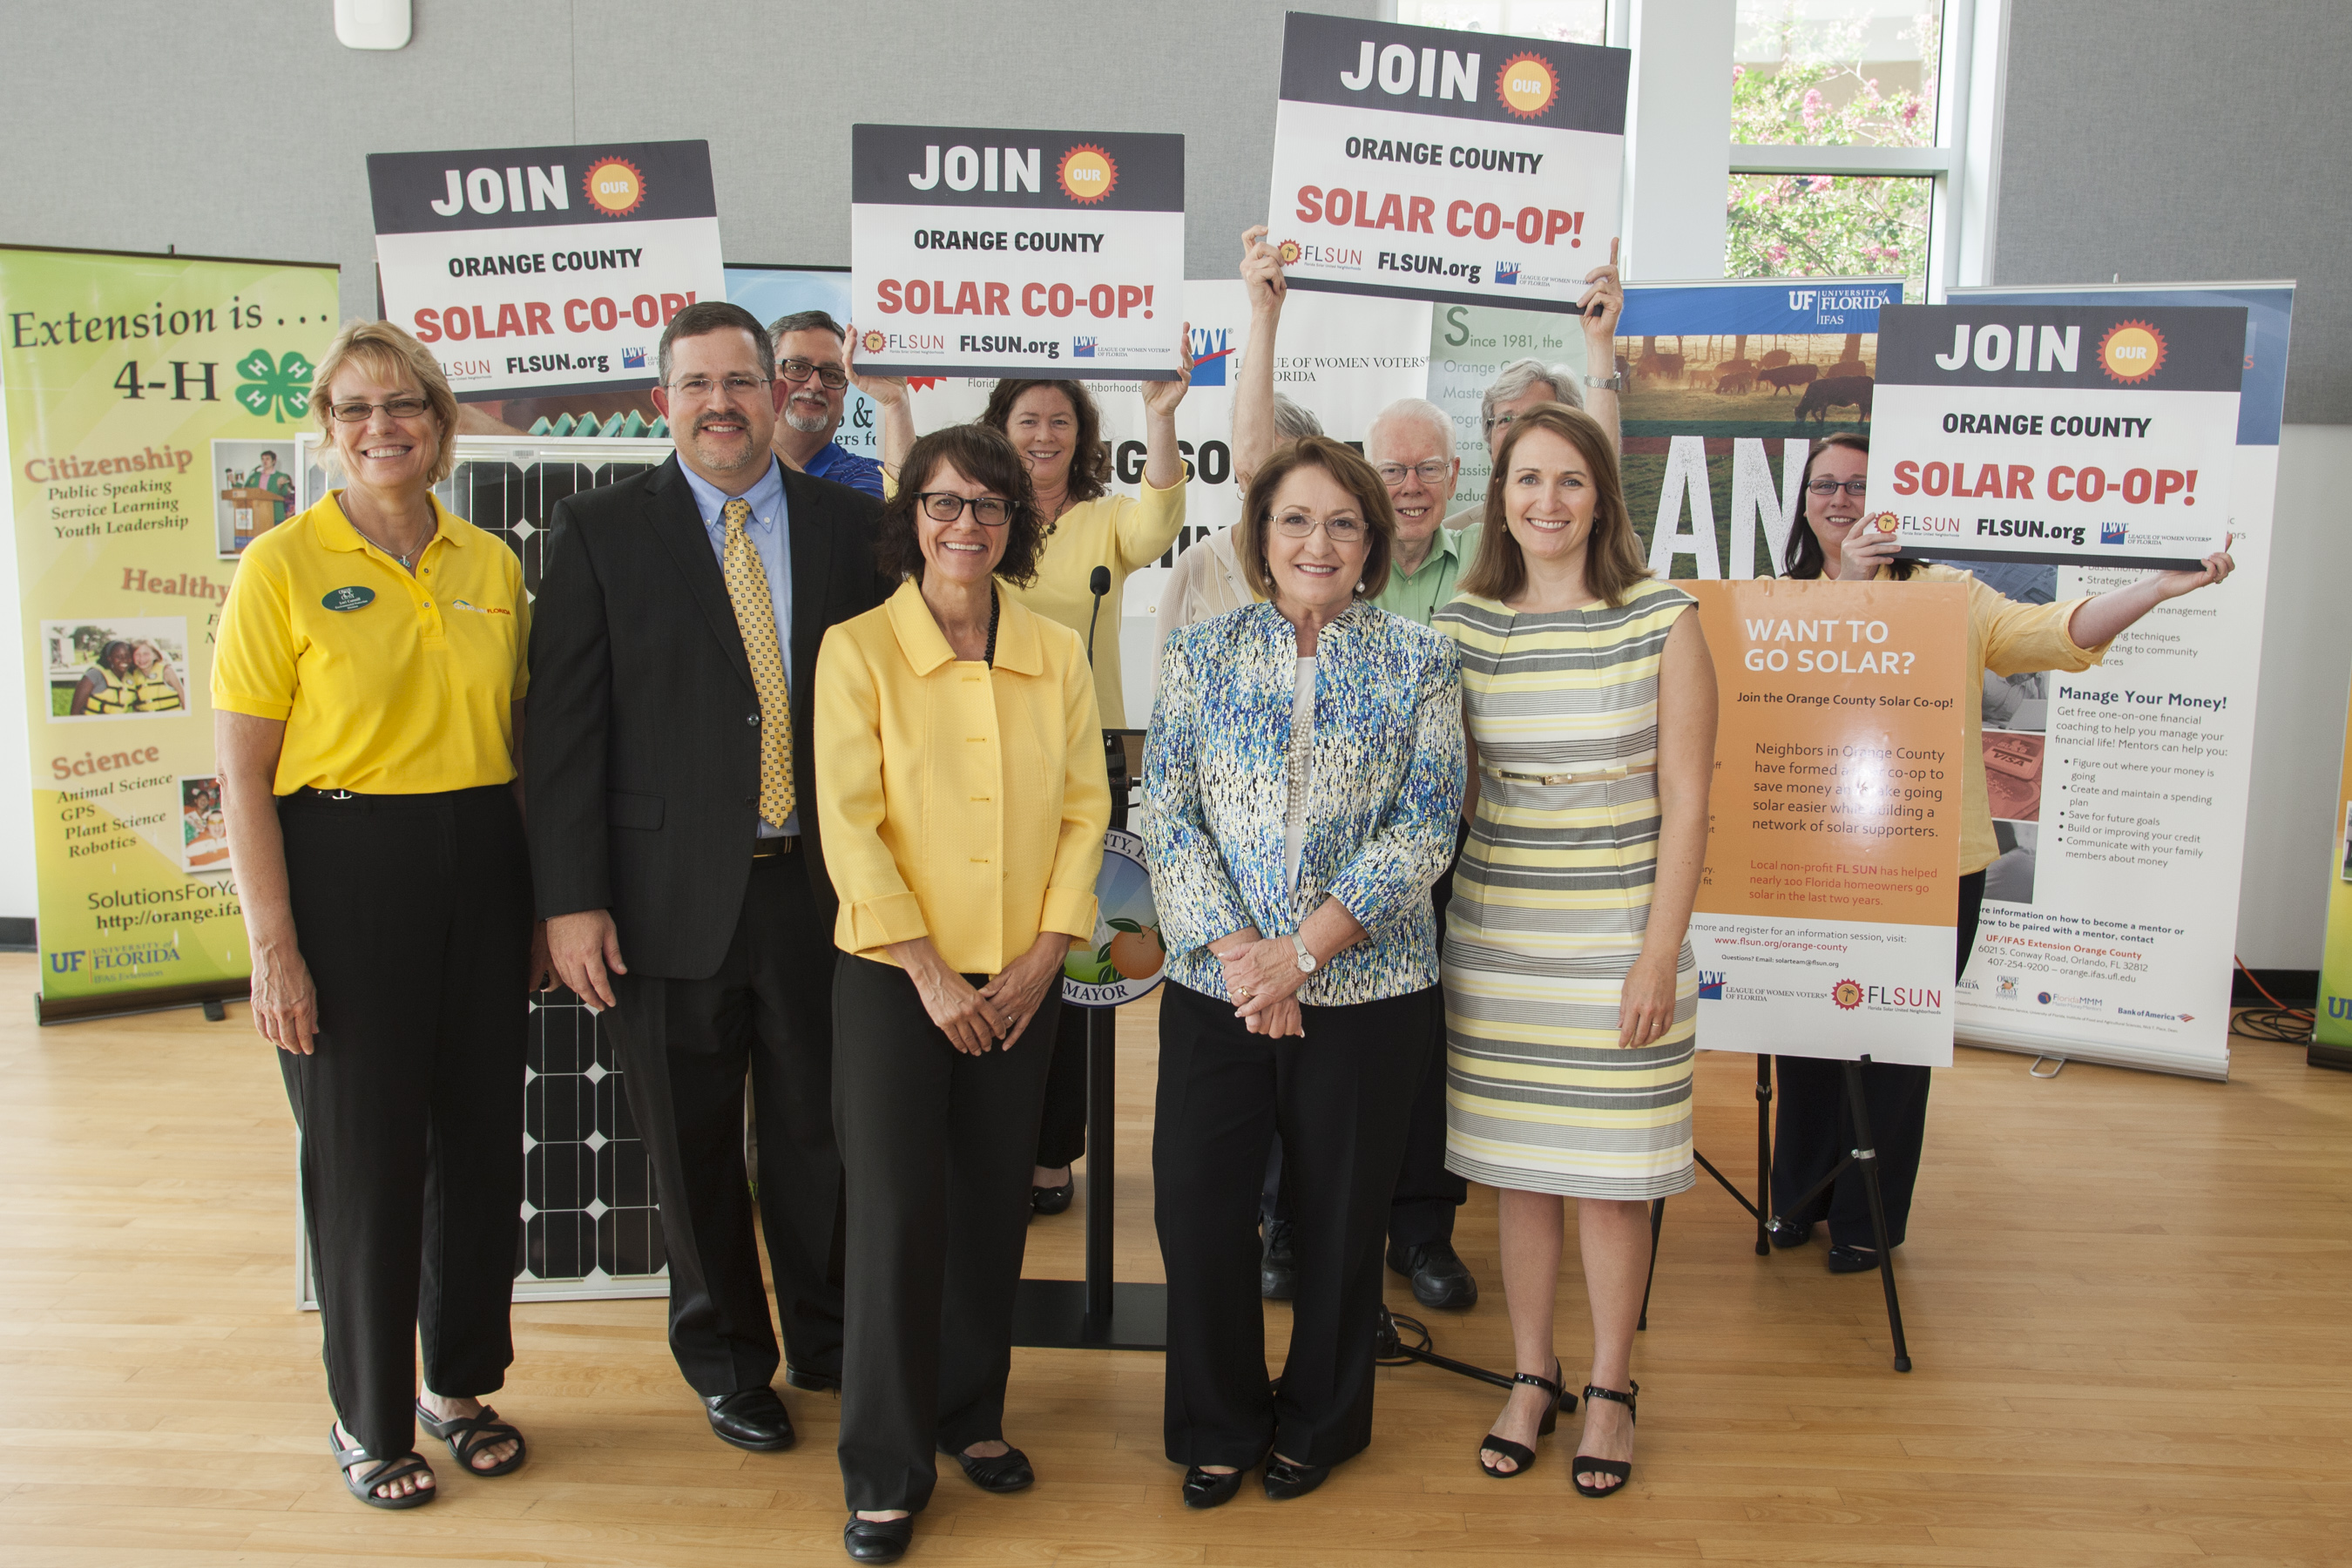 ORANGE COUNTY, Fla. (FNN News): Orange County launches solar co-op. Photo: Orange County Govt.